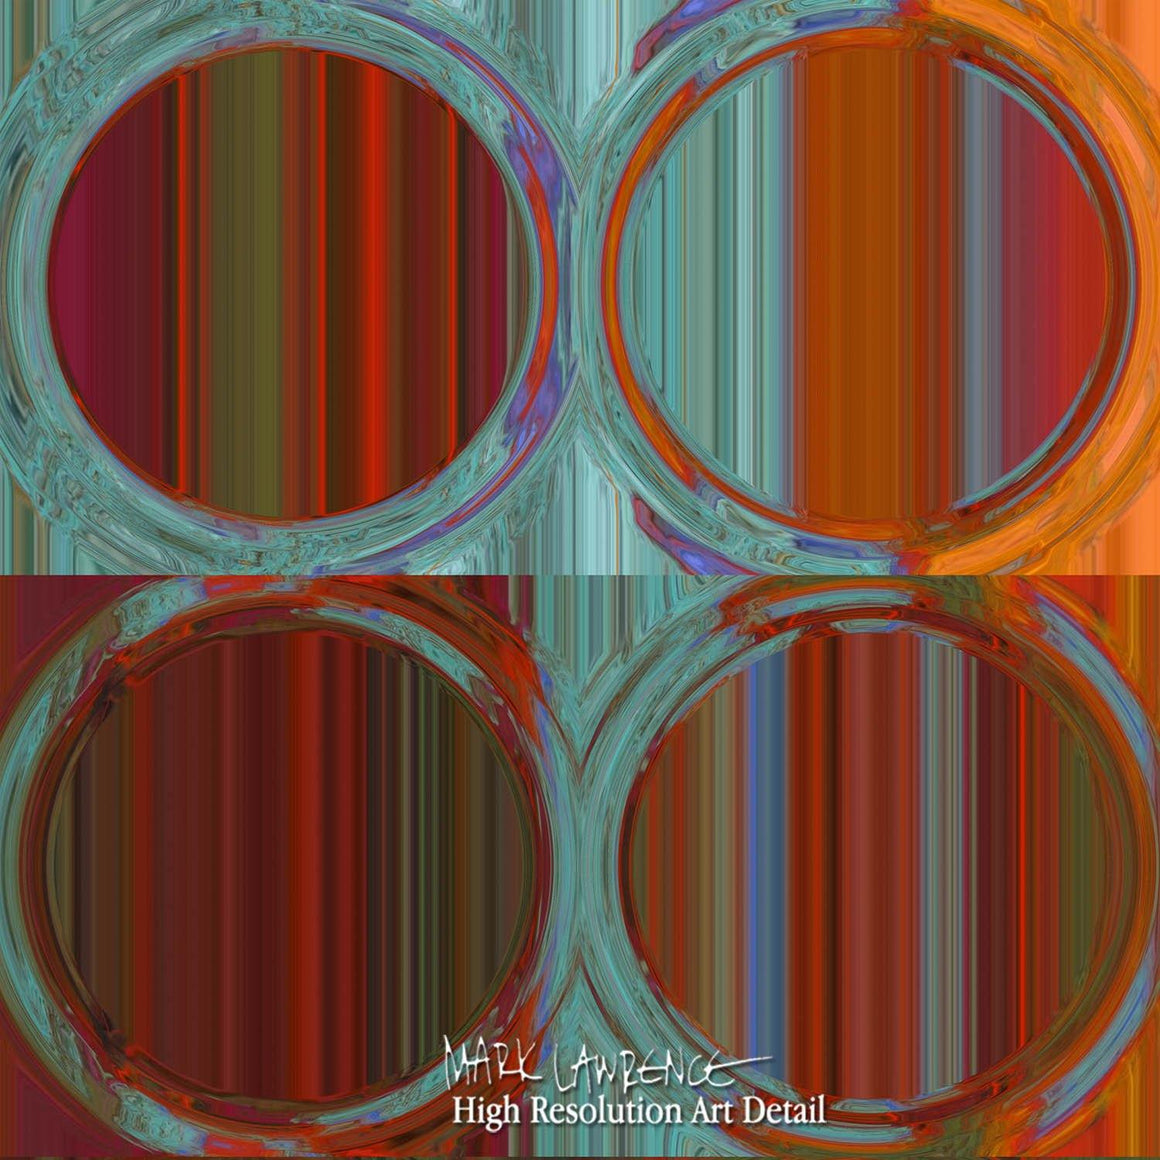 Large Painting Detail-Circles & Squares #35. Exclusive Traditional Fine Art. Original limited edition signed canvas & paper giclees by internationally collected artist Mark Lawrence